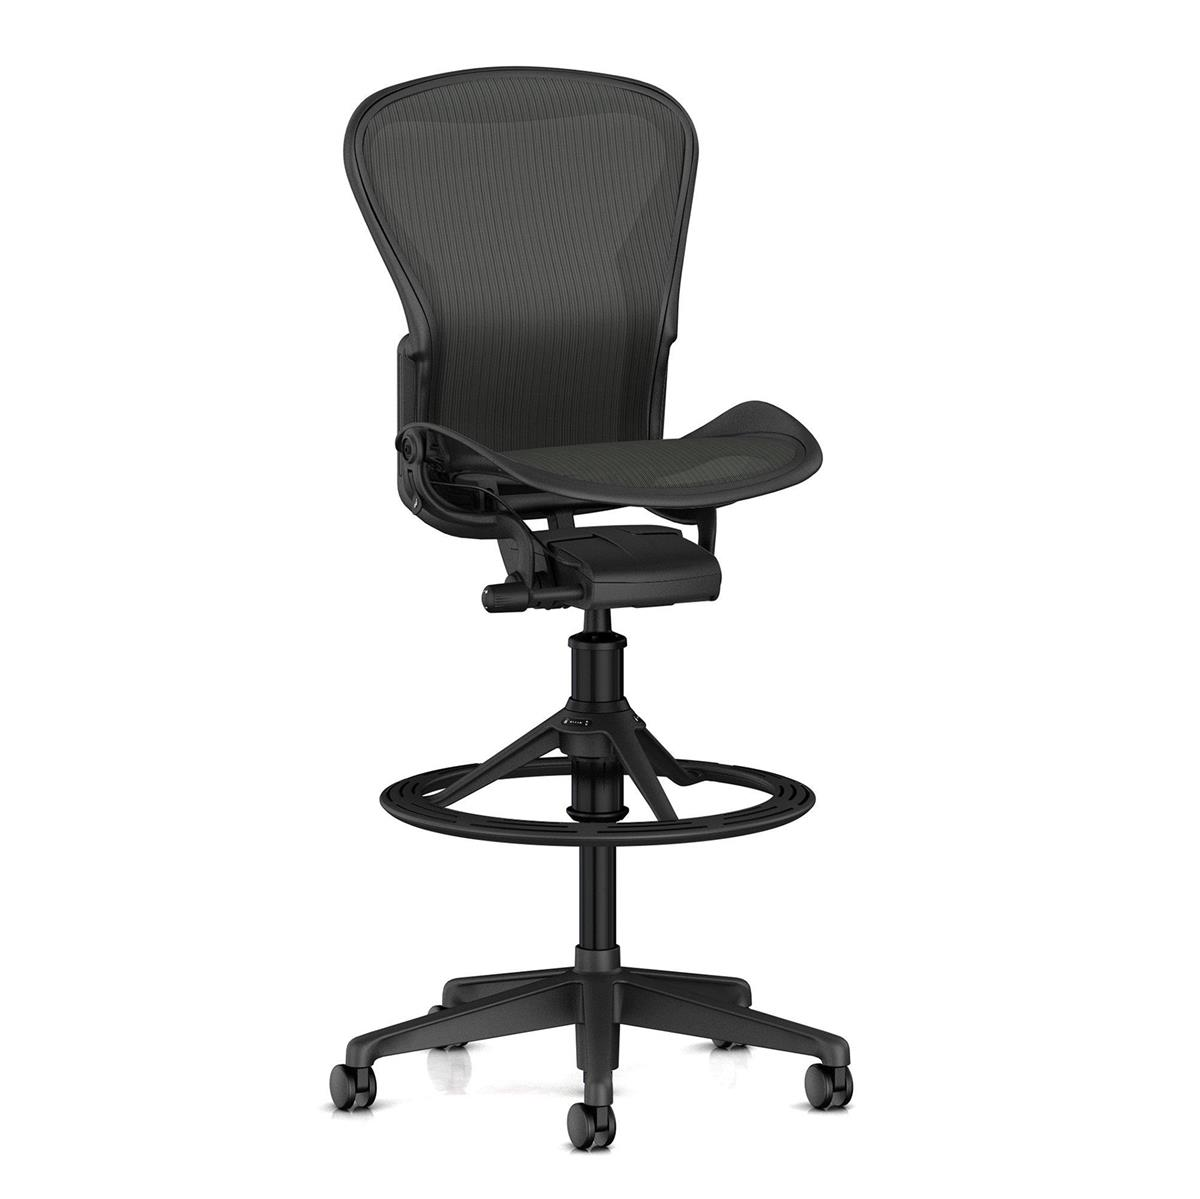 Aeron Stool Counter Height (basic) - Graphite & No Arms